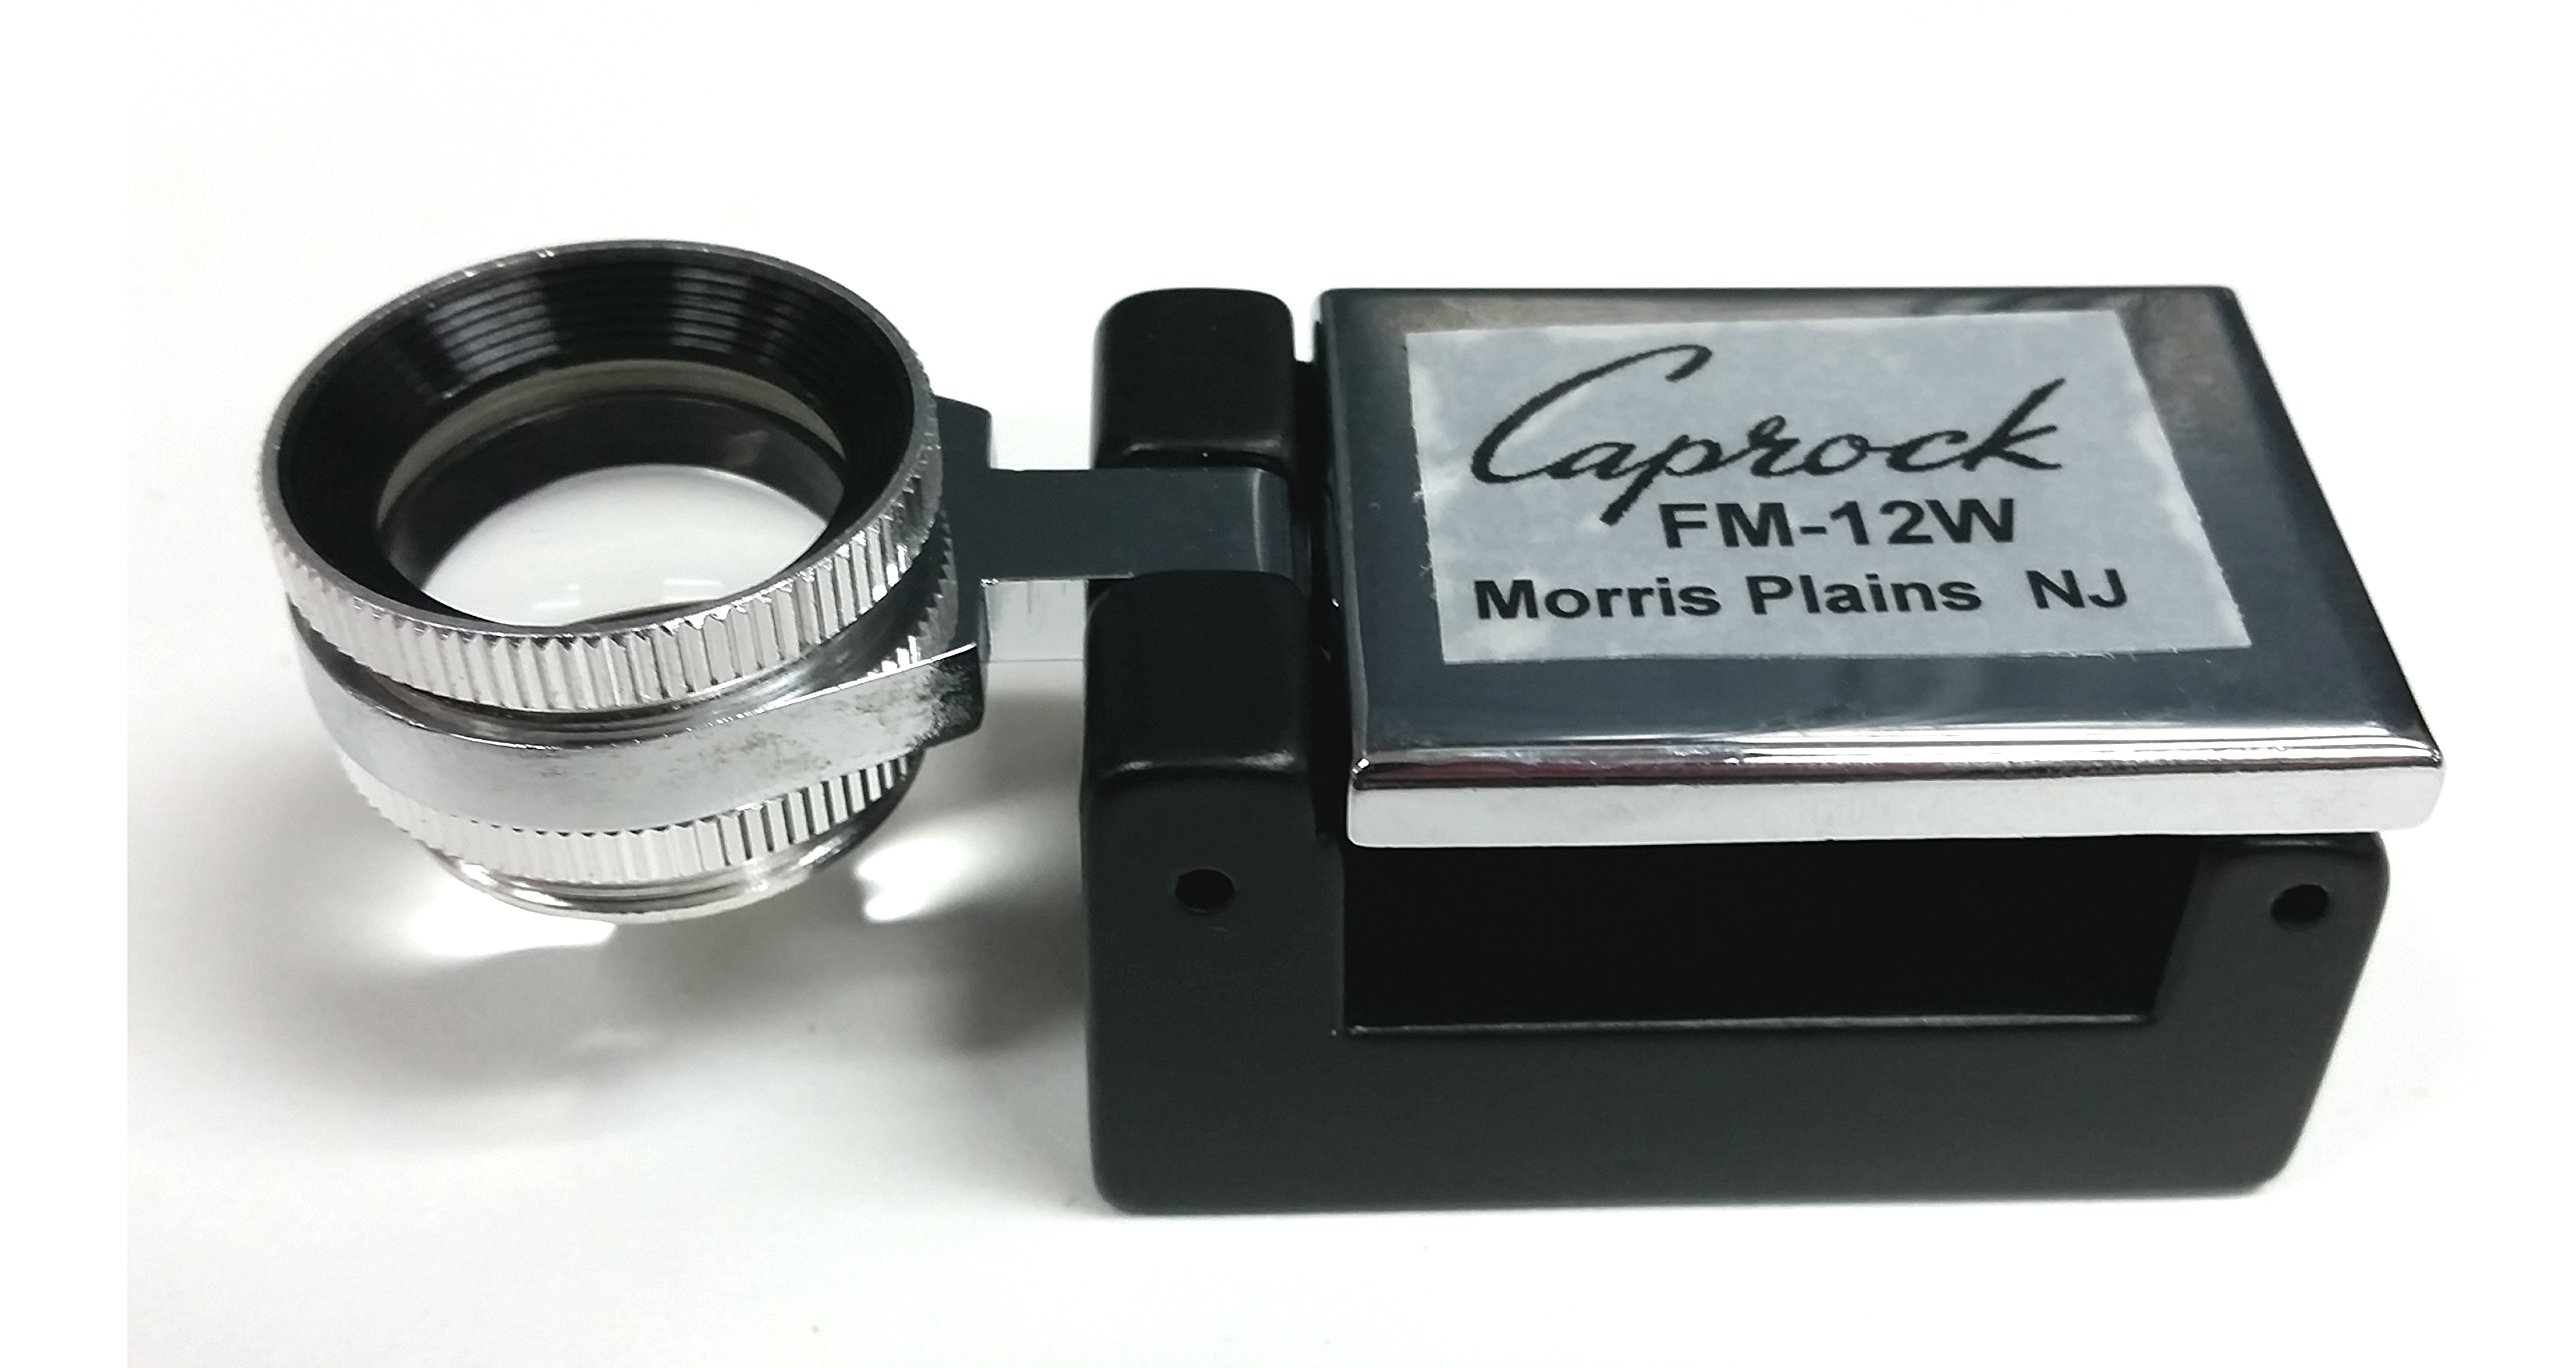 12X / 12 Power PRINTER'S FOLD-Out Magnifier/LOUPE / Loup with Extra Wide-Field Lens by Caprock